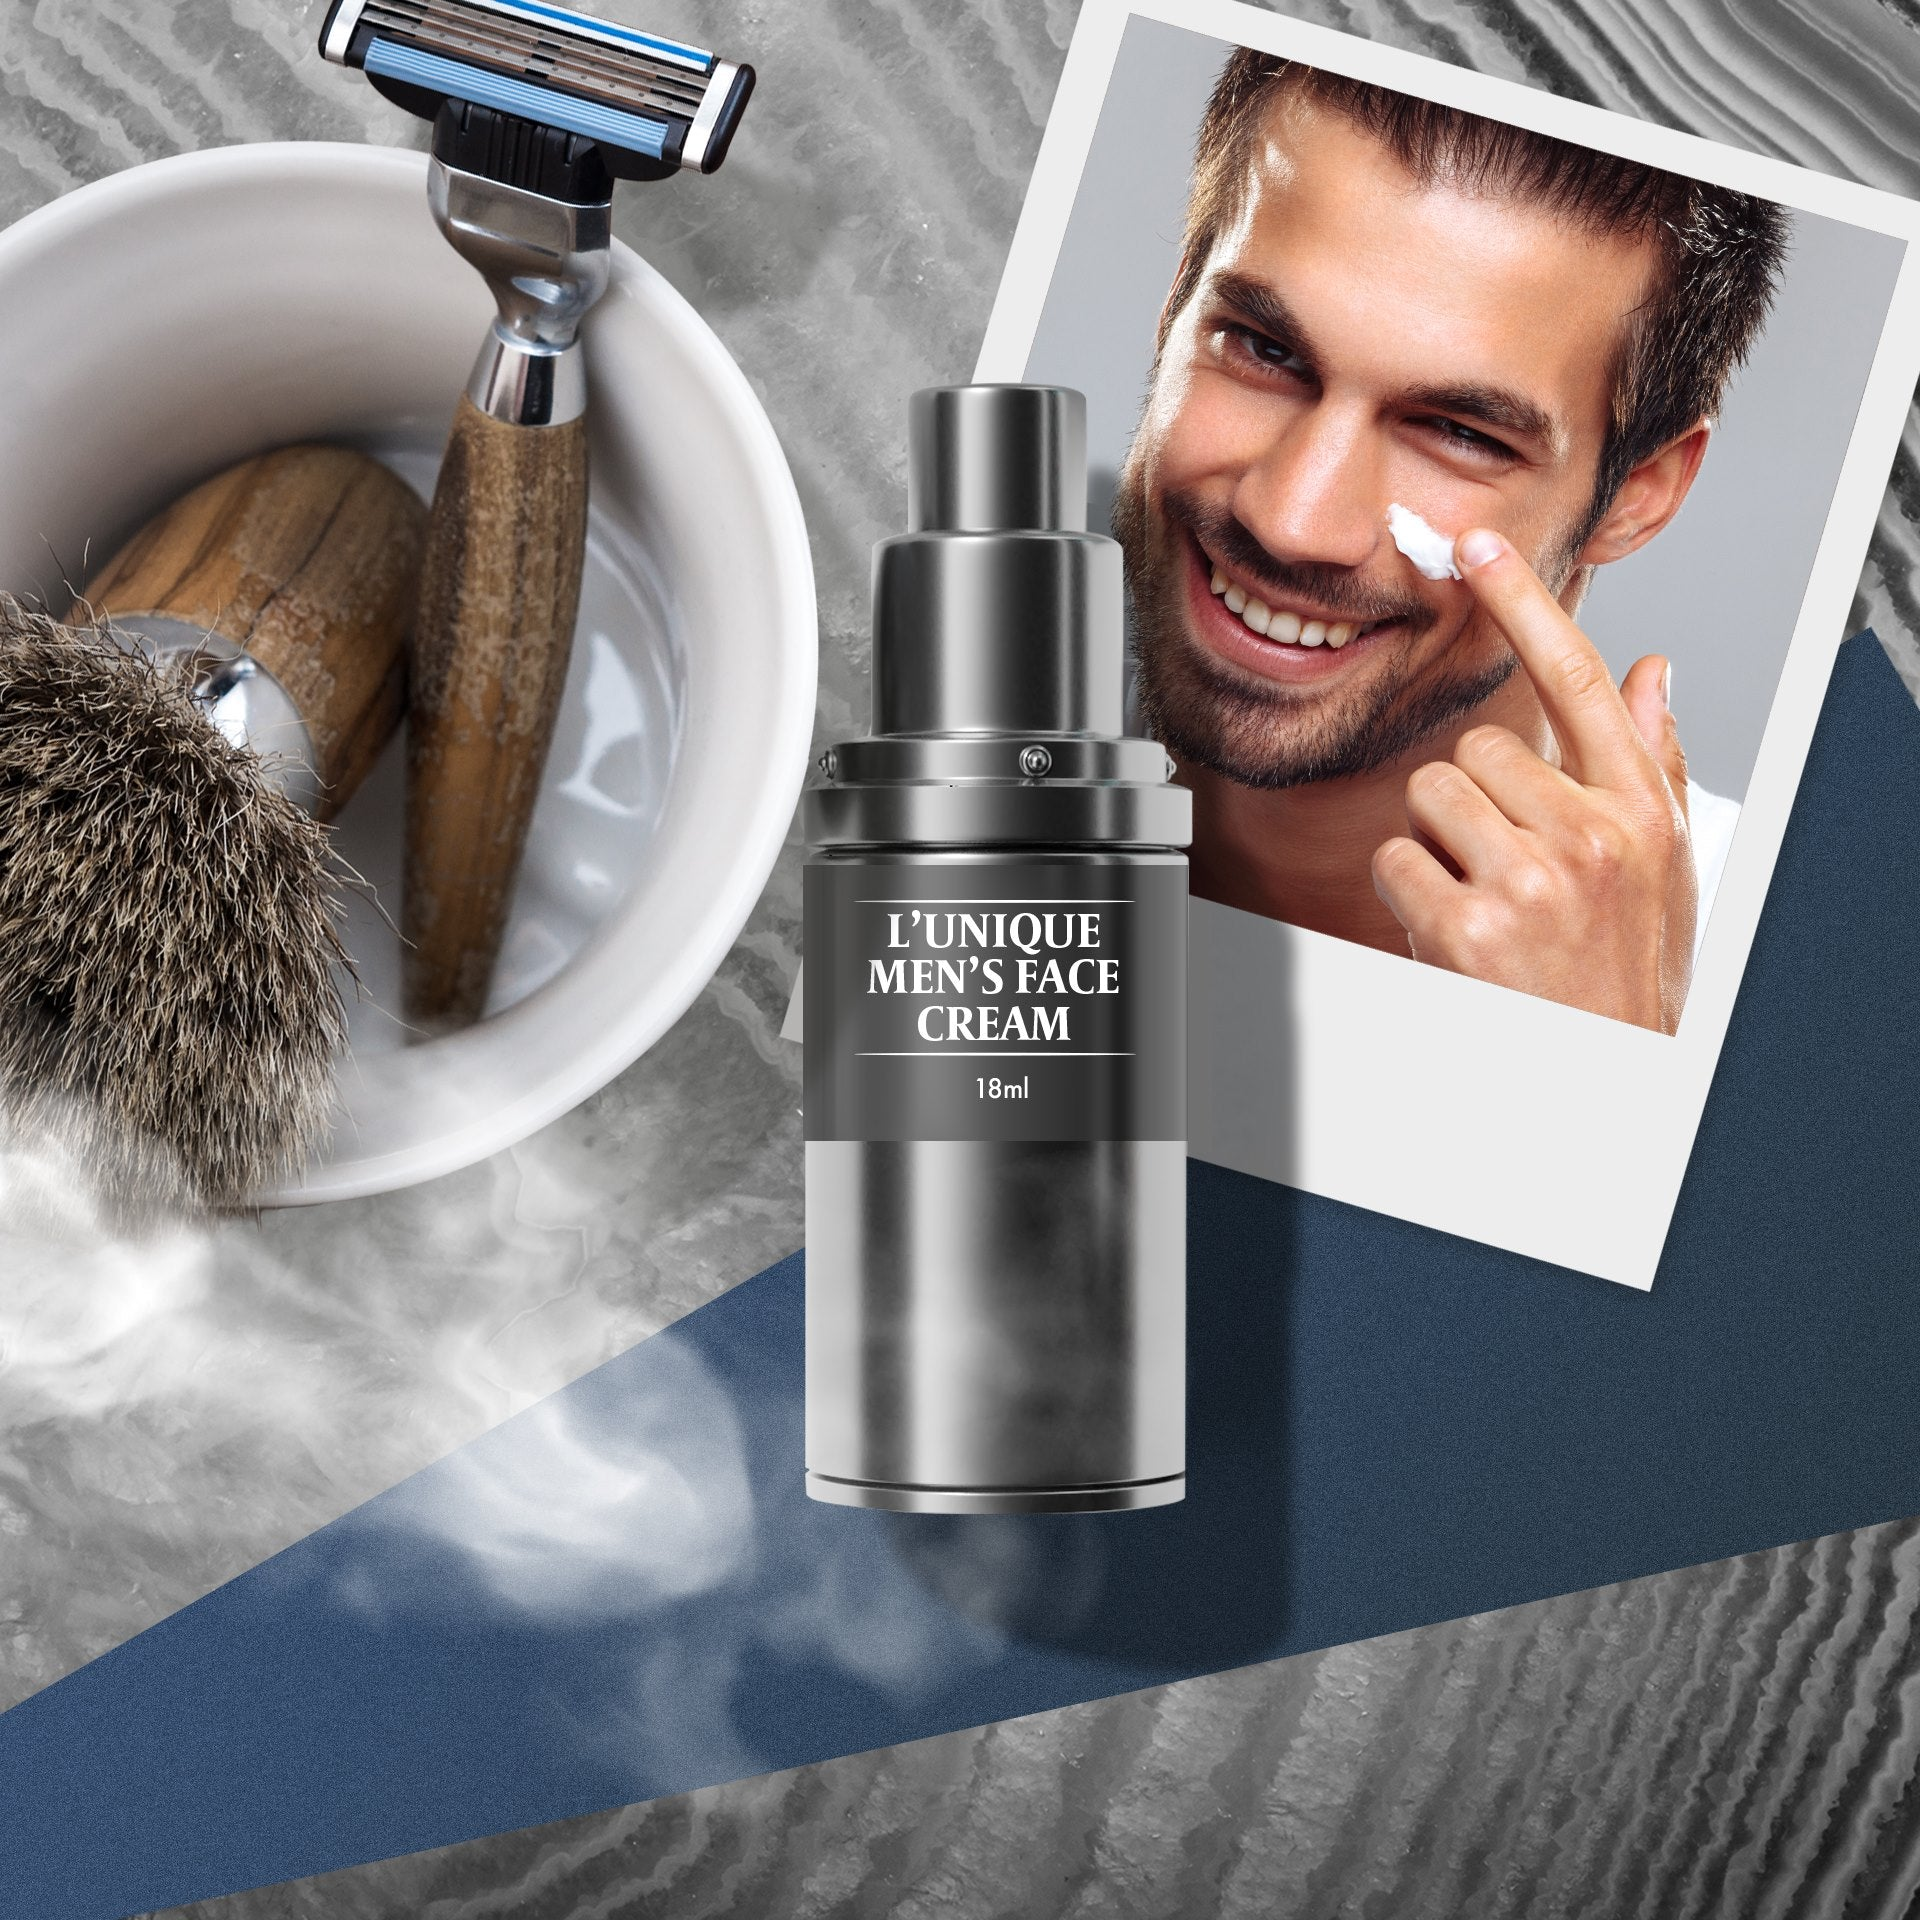 L'Unique Men's Face Serum